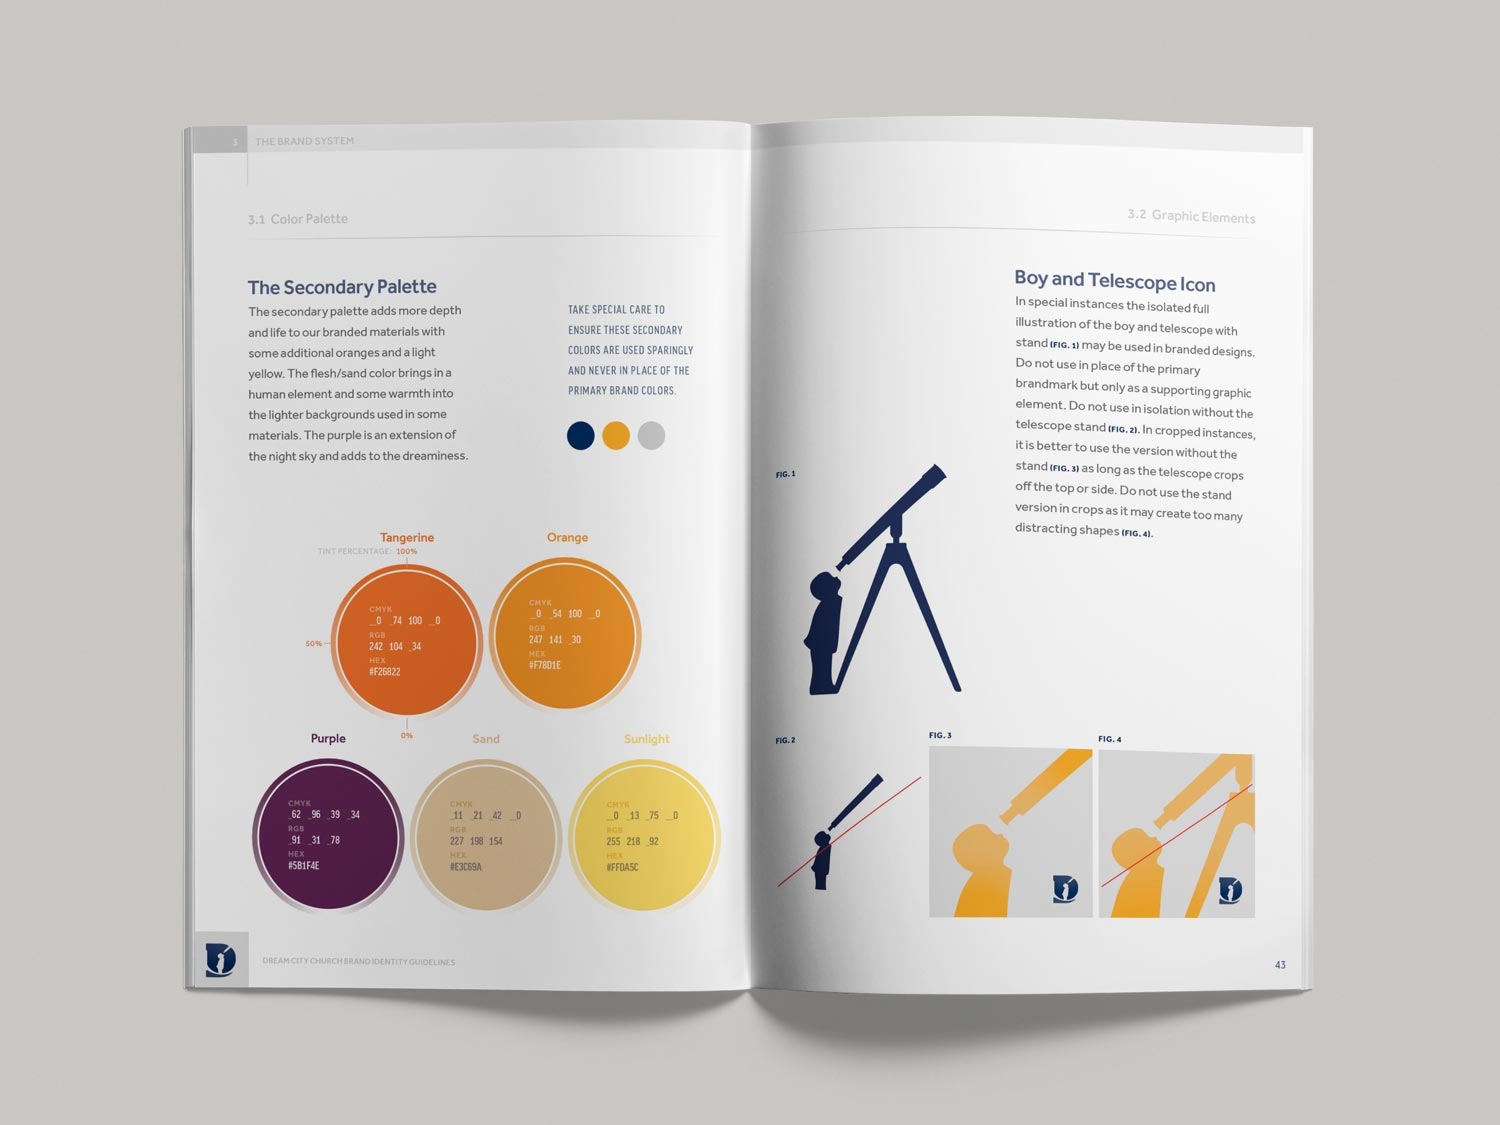 Dream City Church brand guidelines pp42-43